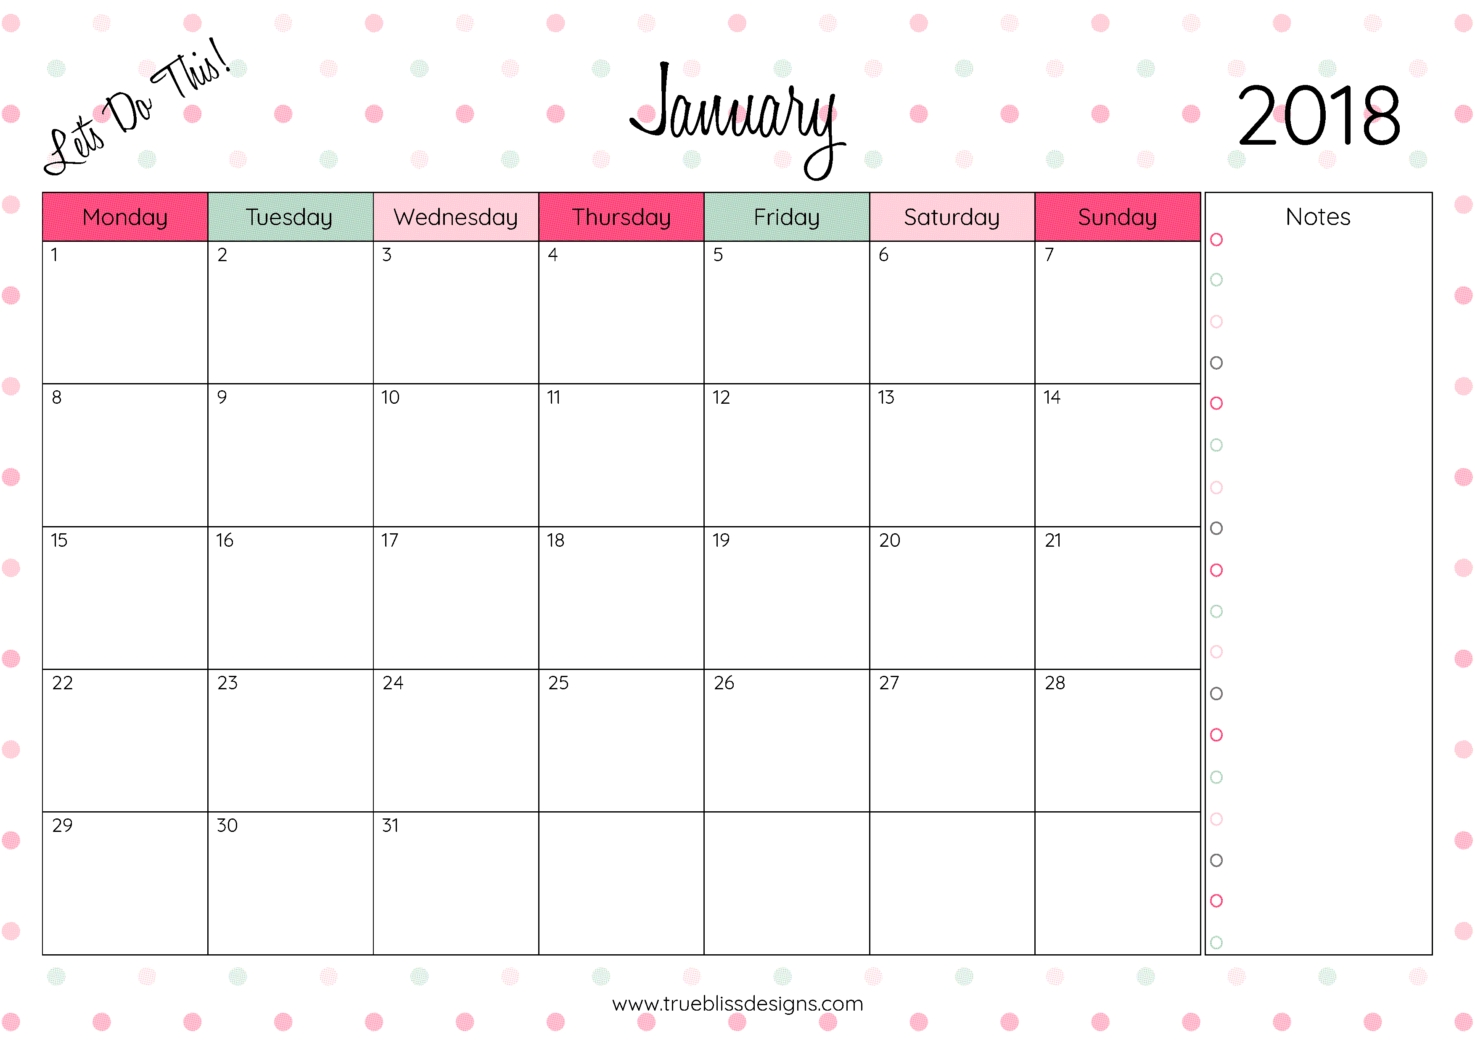 Printable 2018 Monthly Calendar - Yeniscale.co  Monthly Calendars To Print Colorful